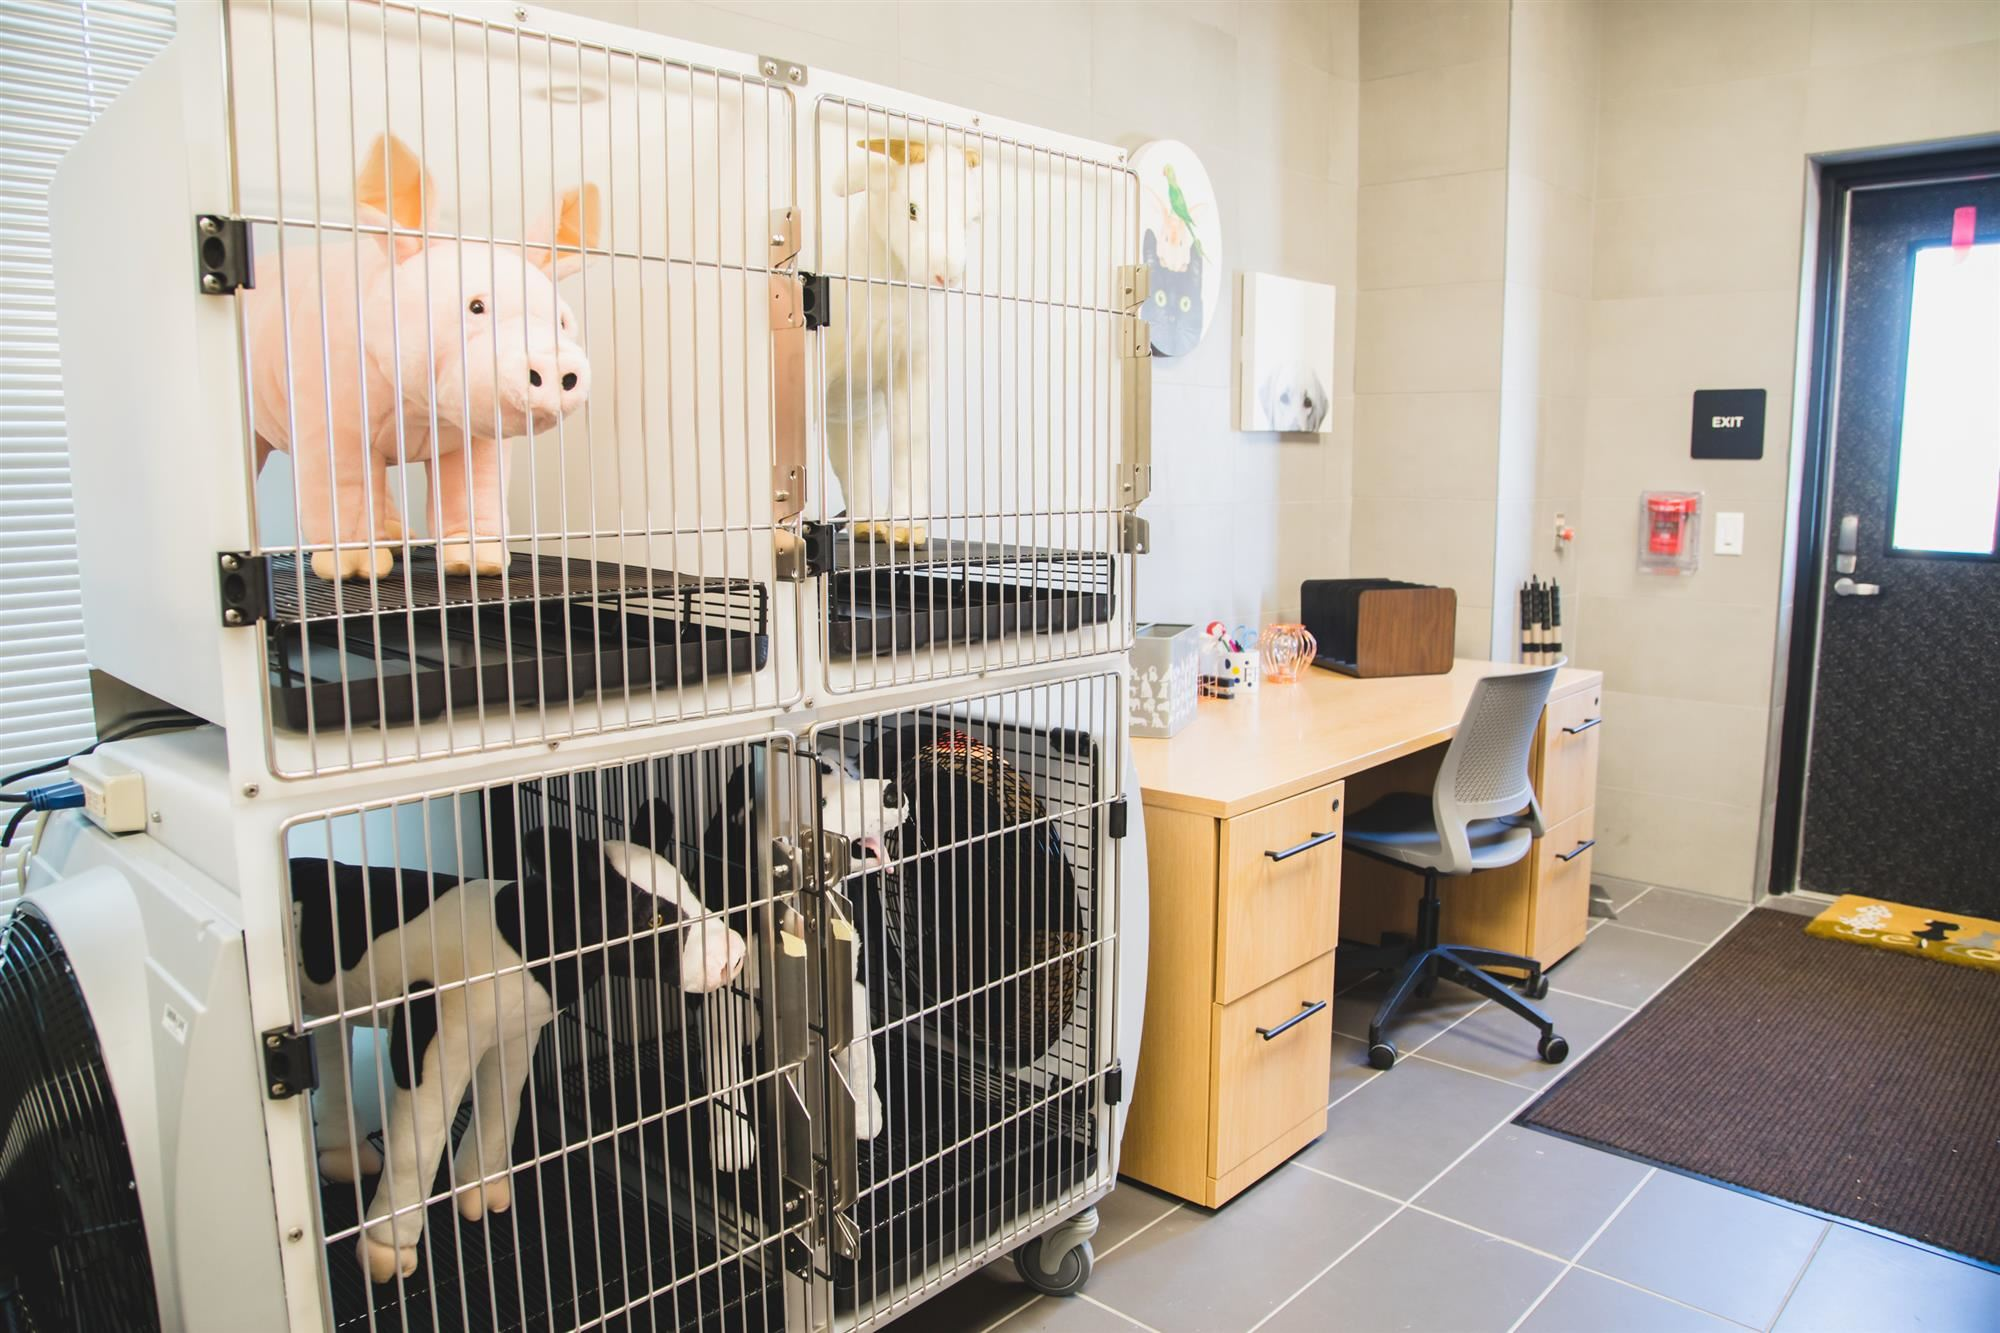 Toy animals in veterinary kennels